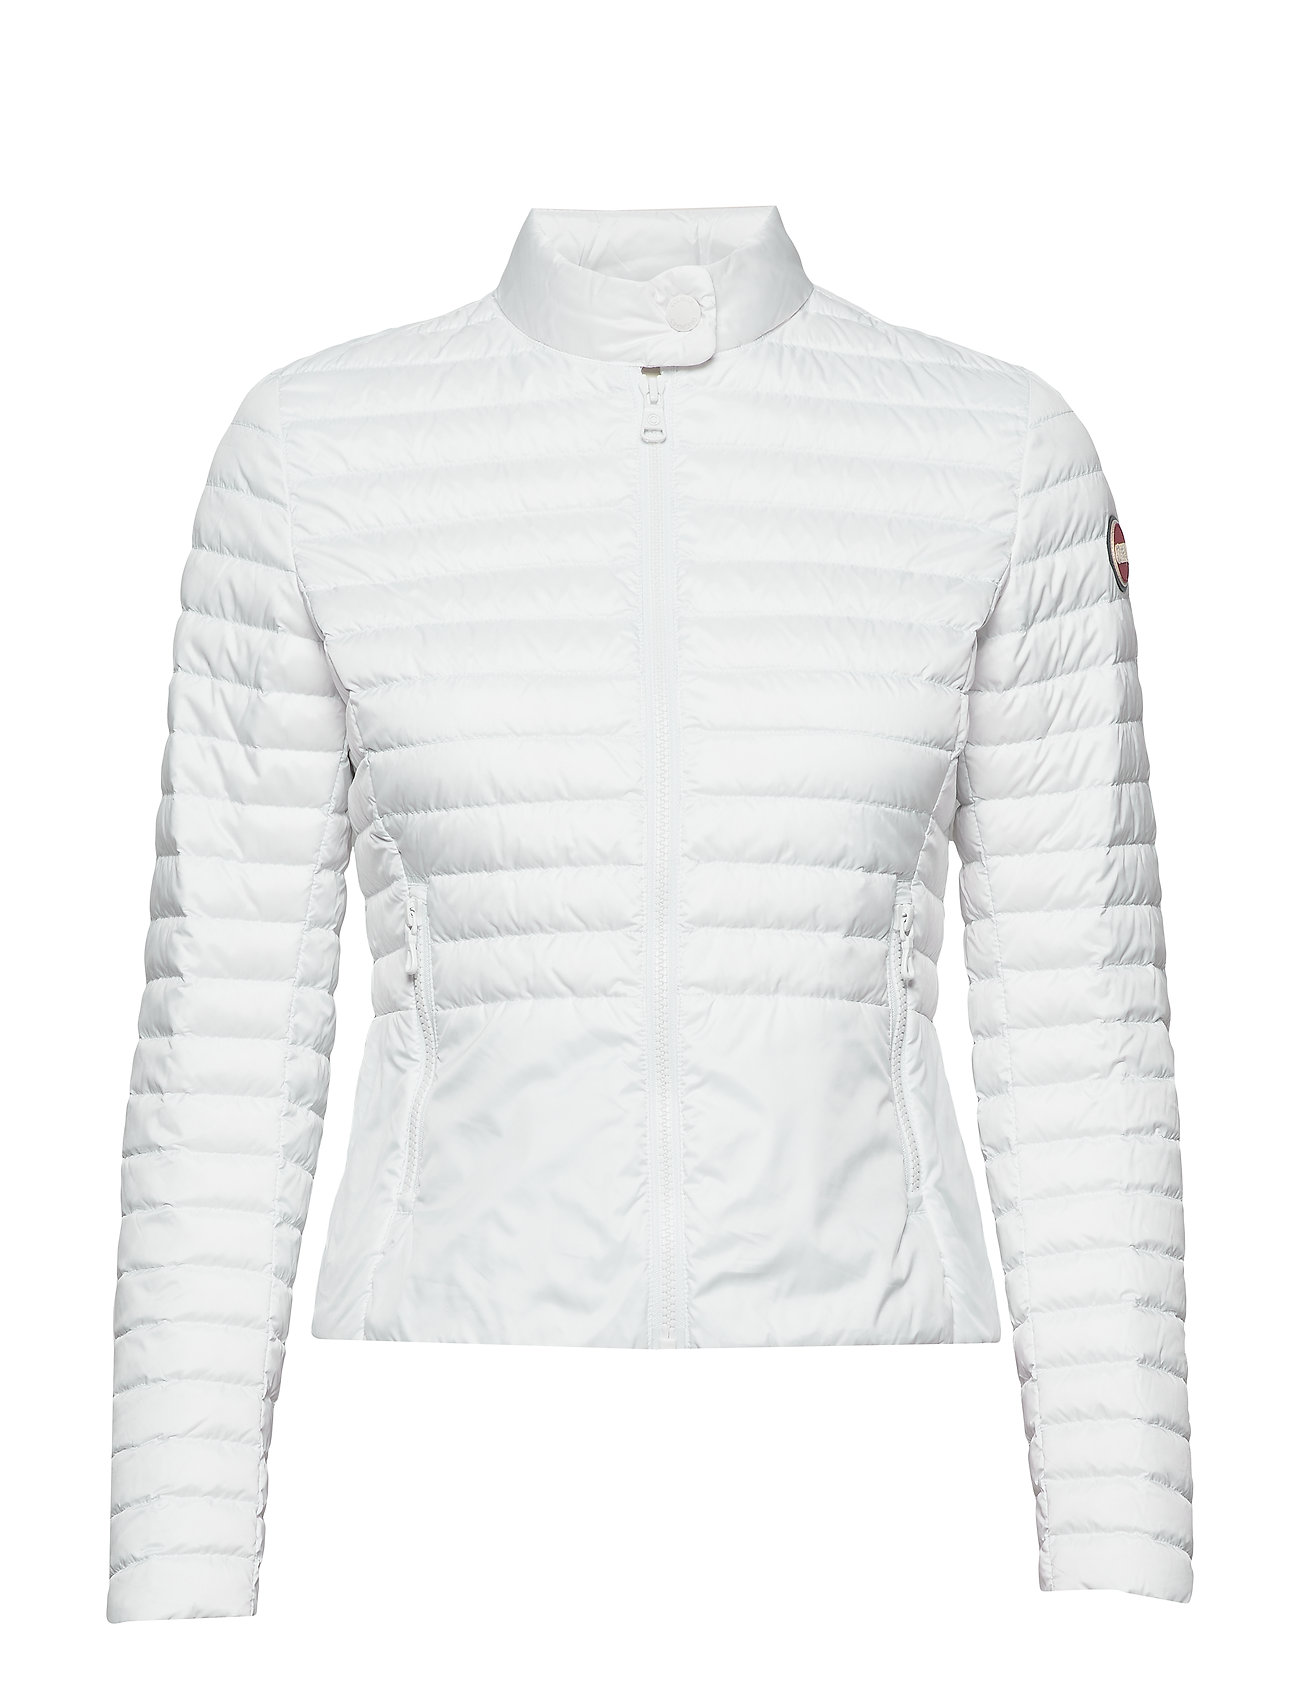 Colmar LADIES DOWN JACKET - 001 WHITE-LIGHT STEEL